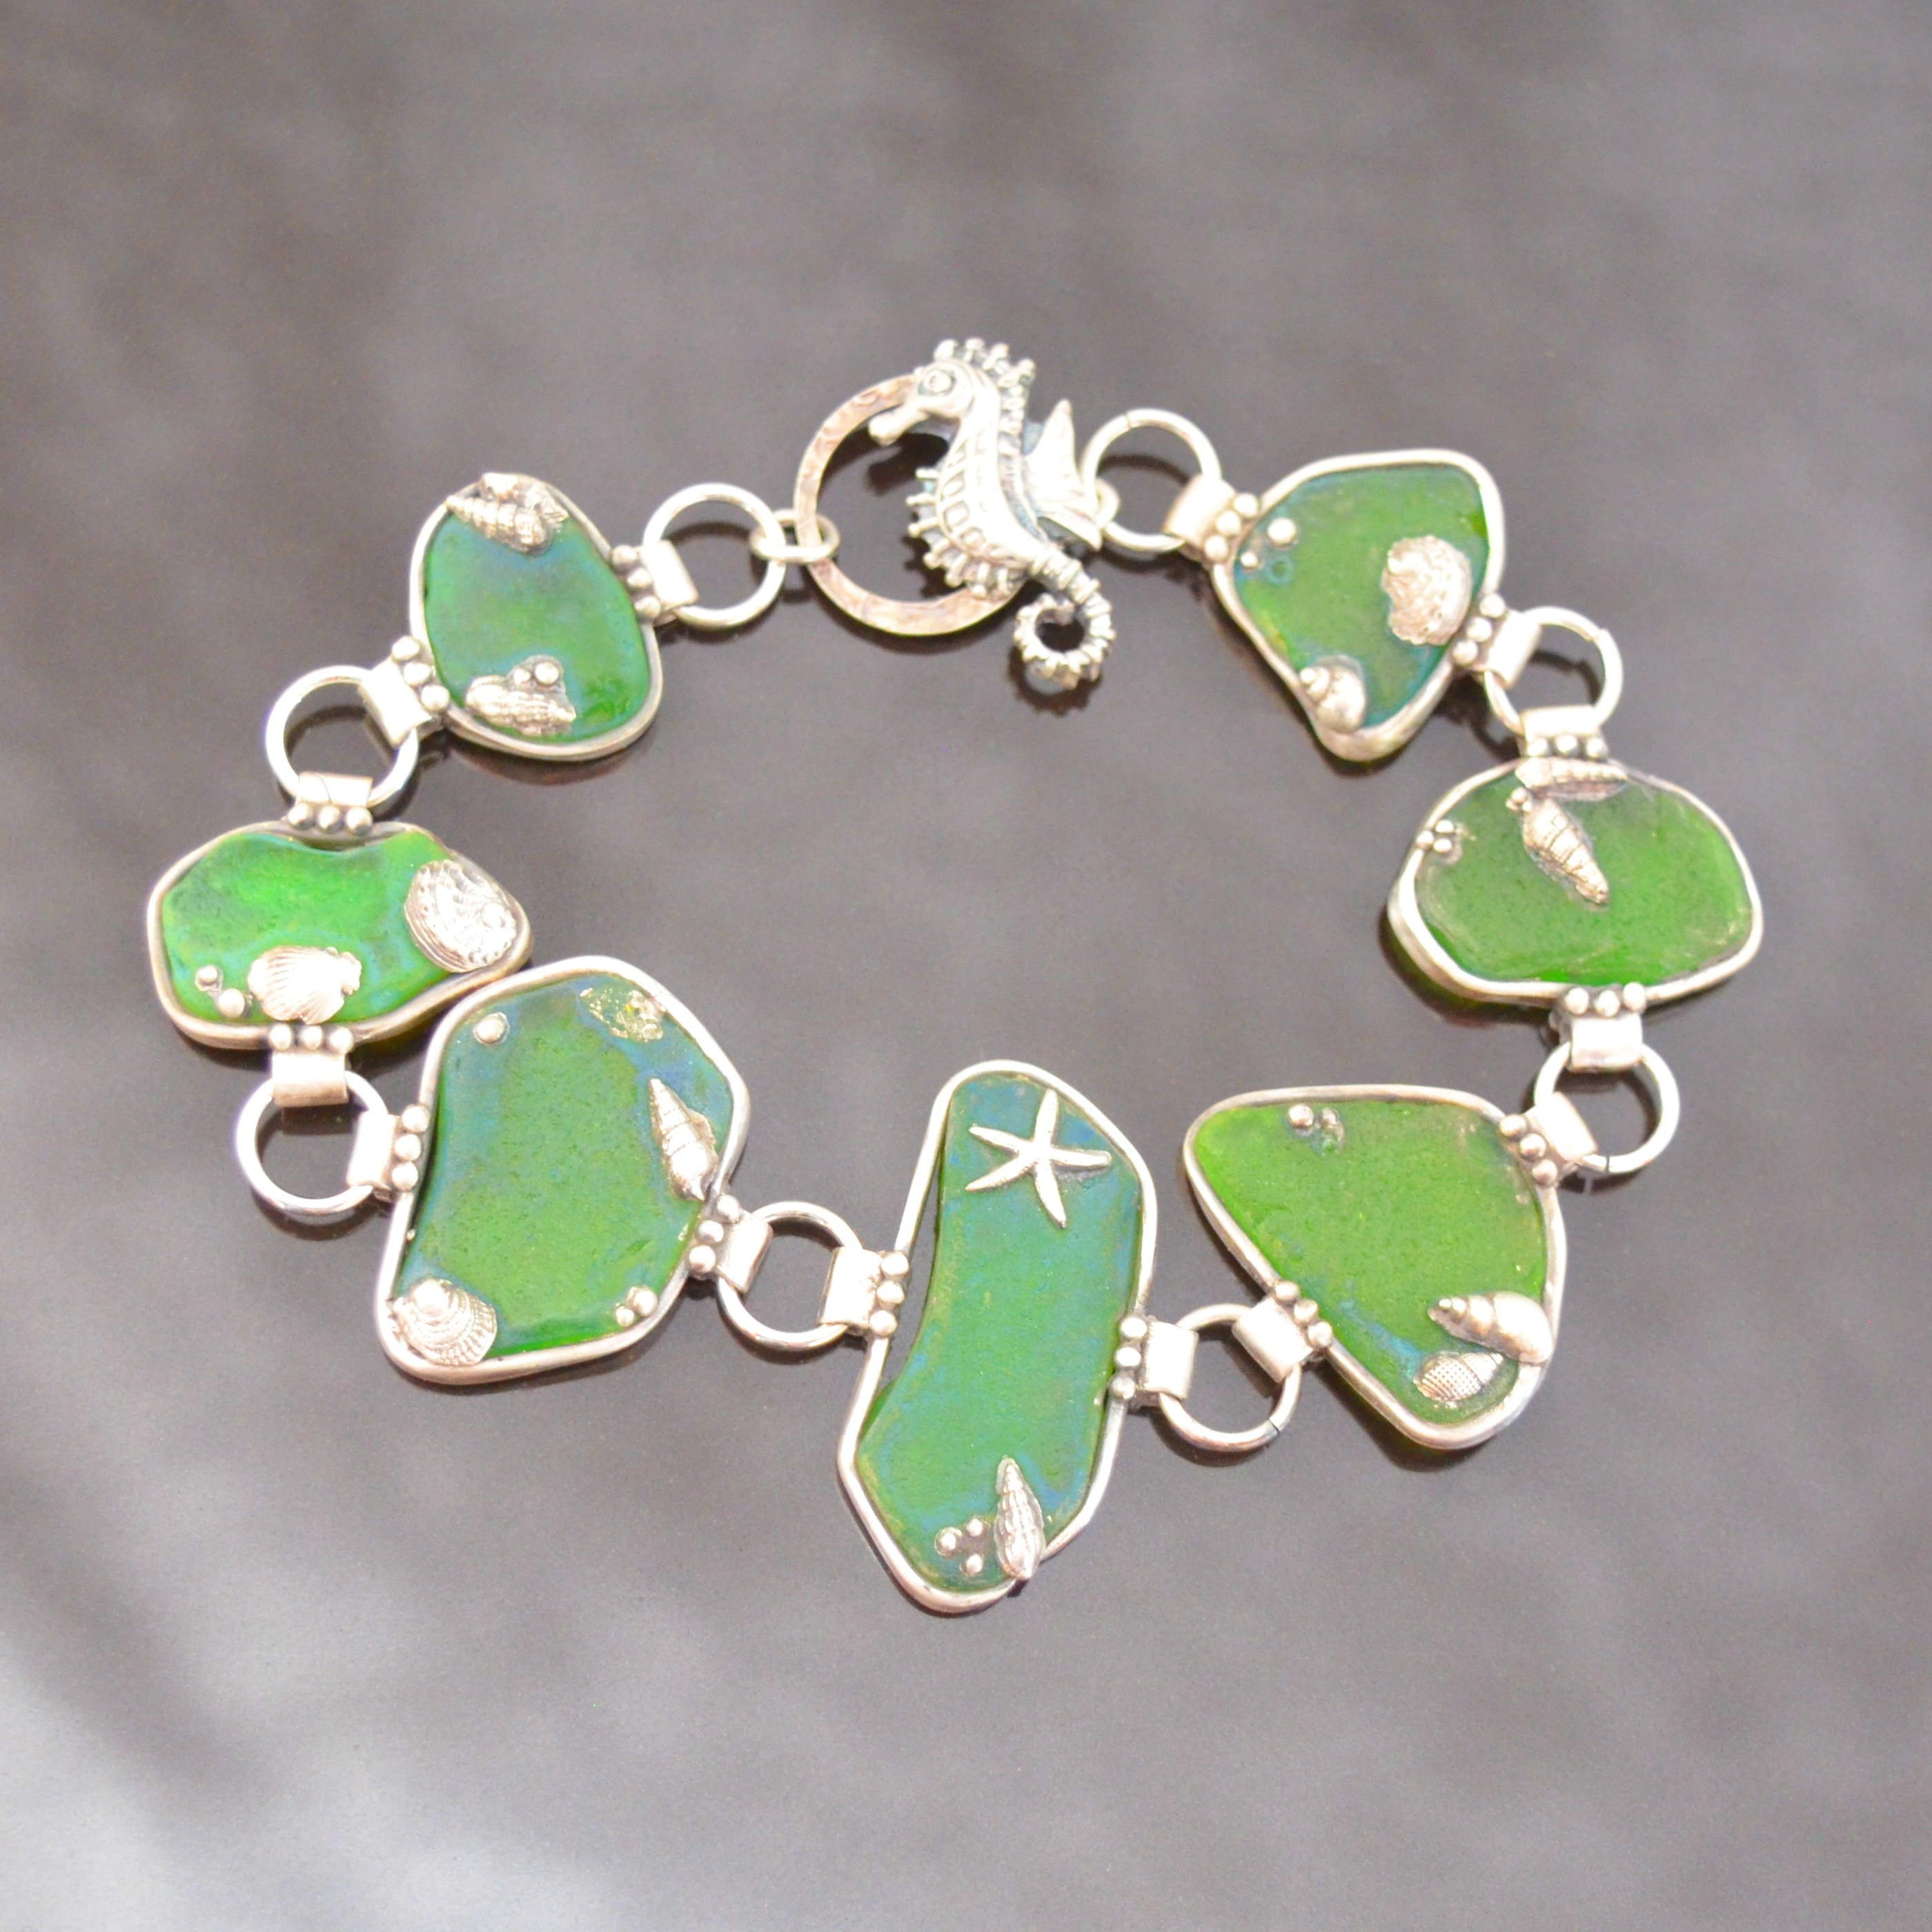 Sea Glass Silver Clay Rock Pool Bracelet by Tracey Spurgin of Craftworx Jewellery Workshops